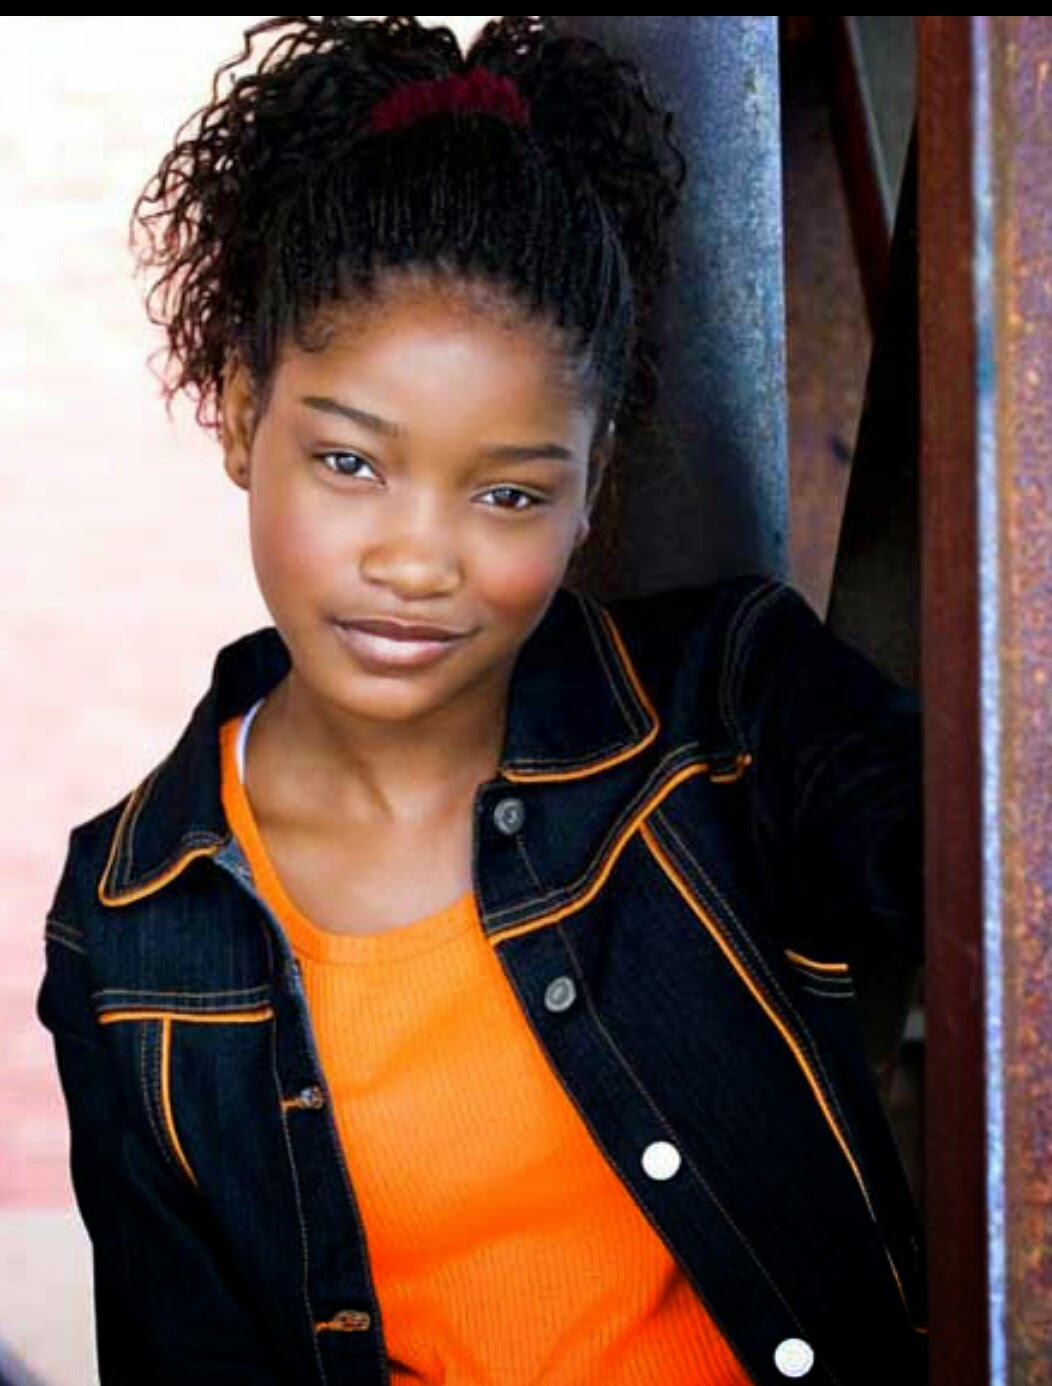 black preteen Born Lauren Keyana Palmer the 20 year old from Harvey, IL is definitely  blazing her own trail. Over the years we have watched her career blossom.